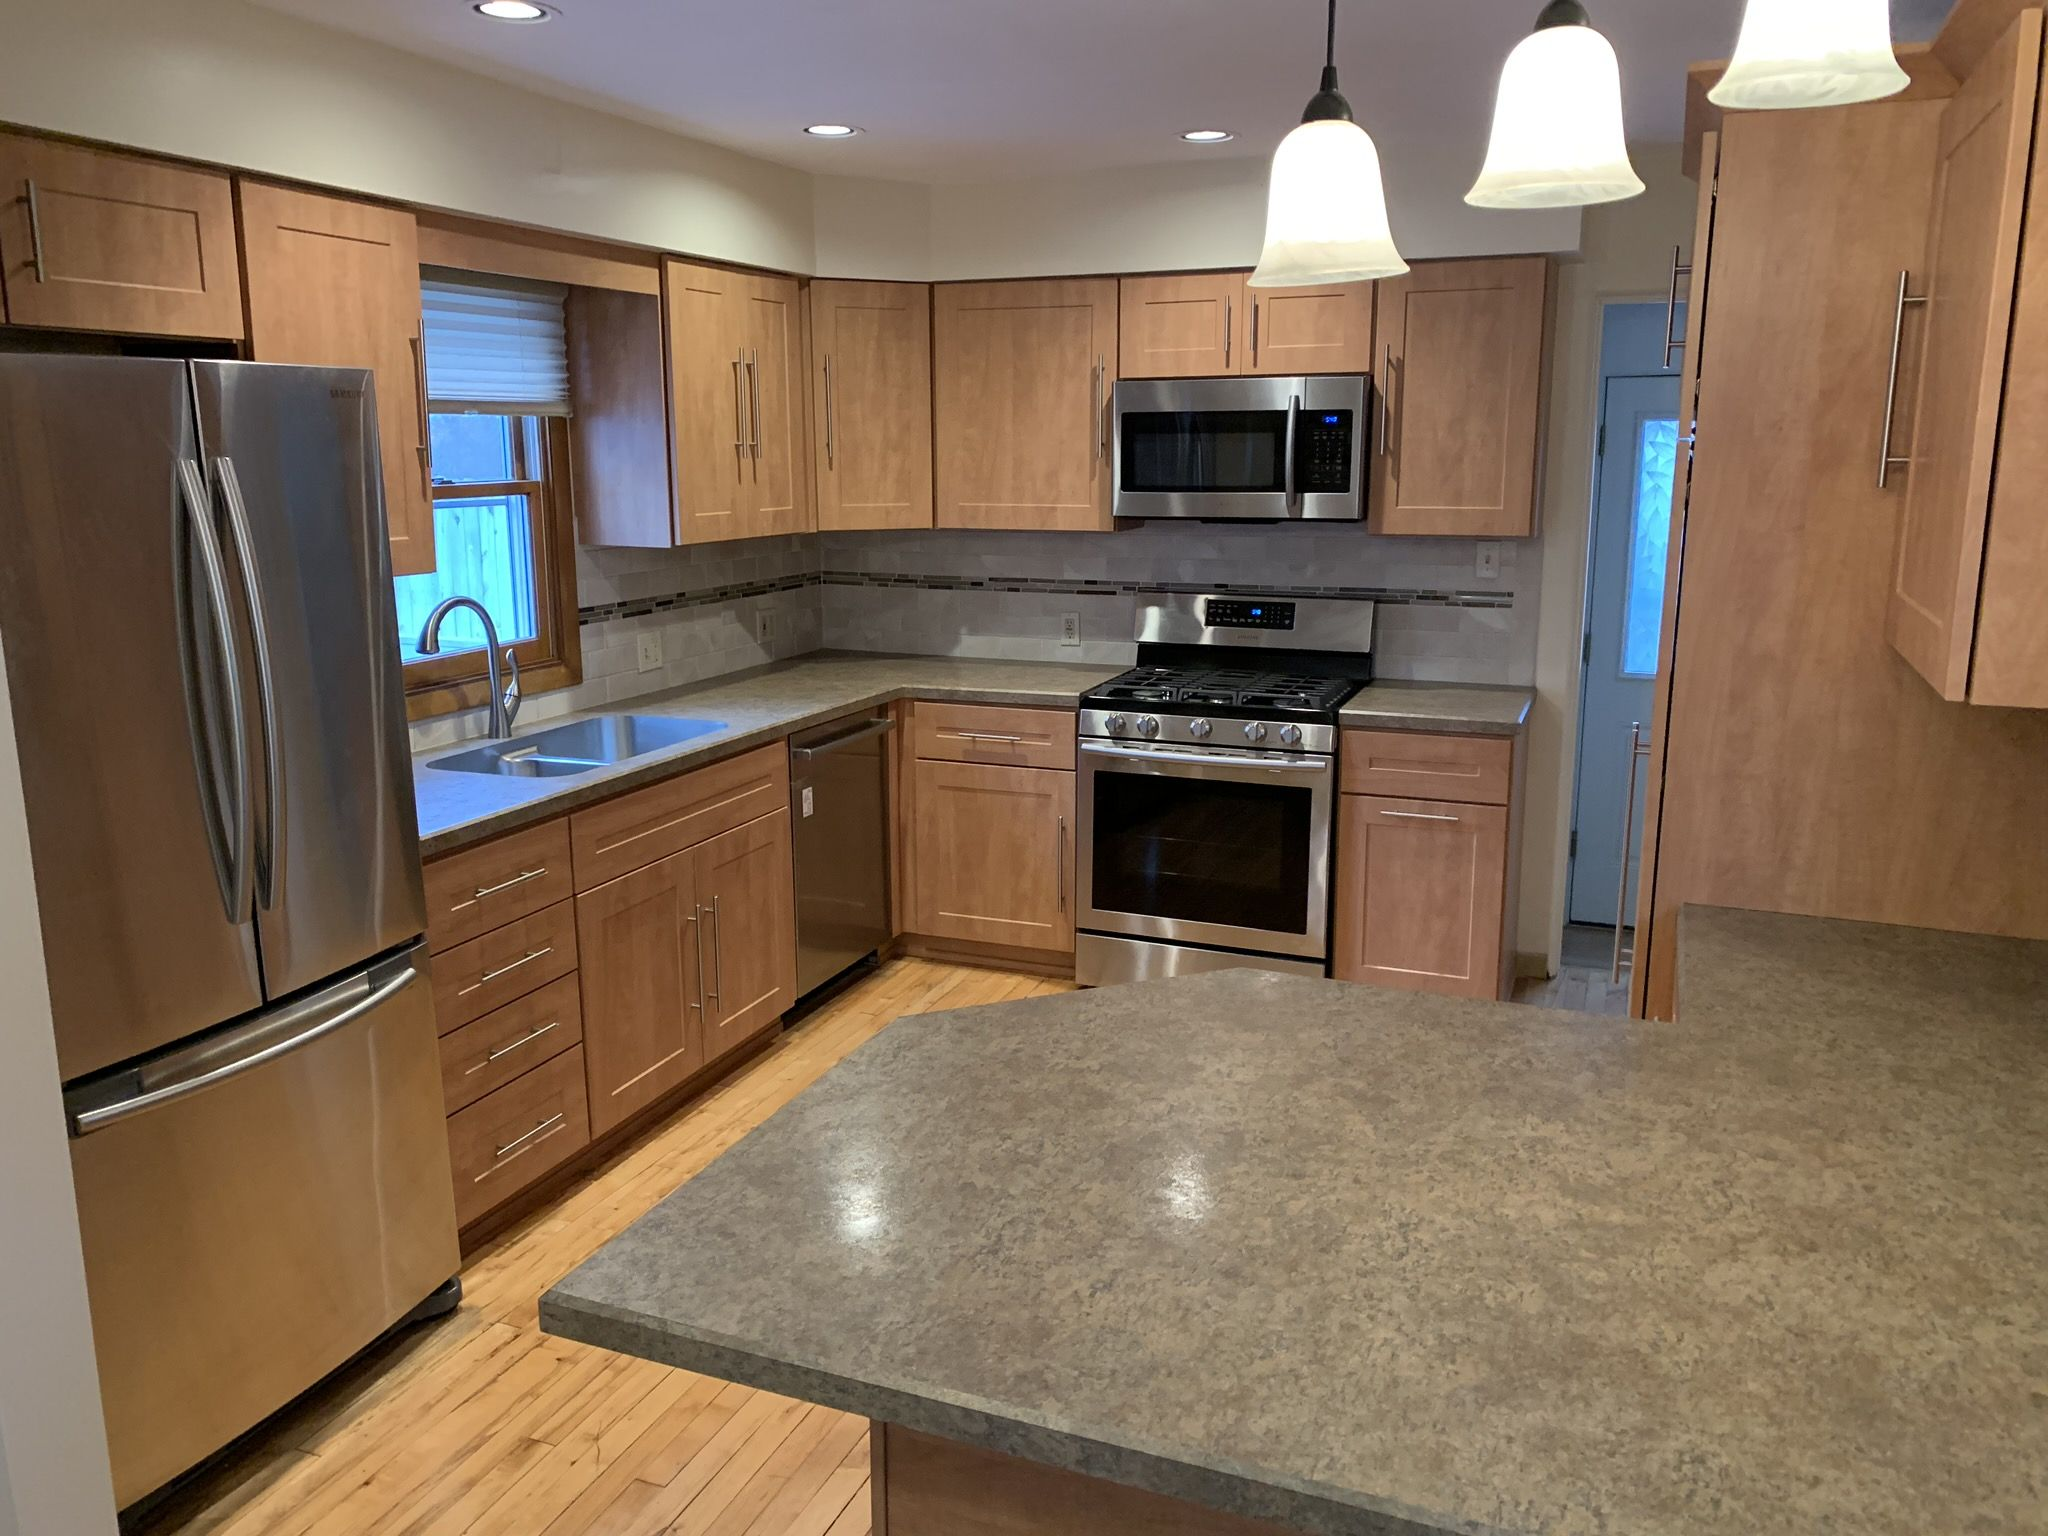 Kitchen Tune Up Grand Rapids Mi Refacing In 2020 Cabinet Refacing Kitchen Prices Reface